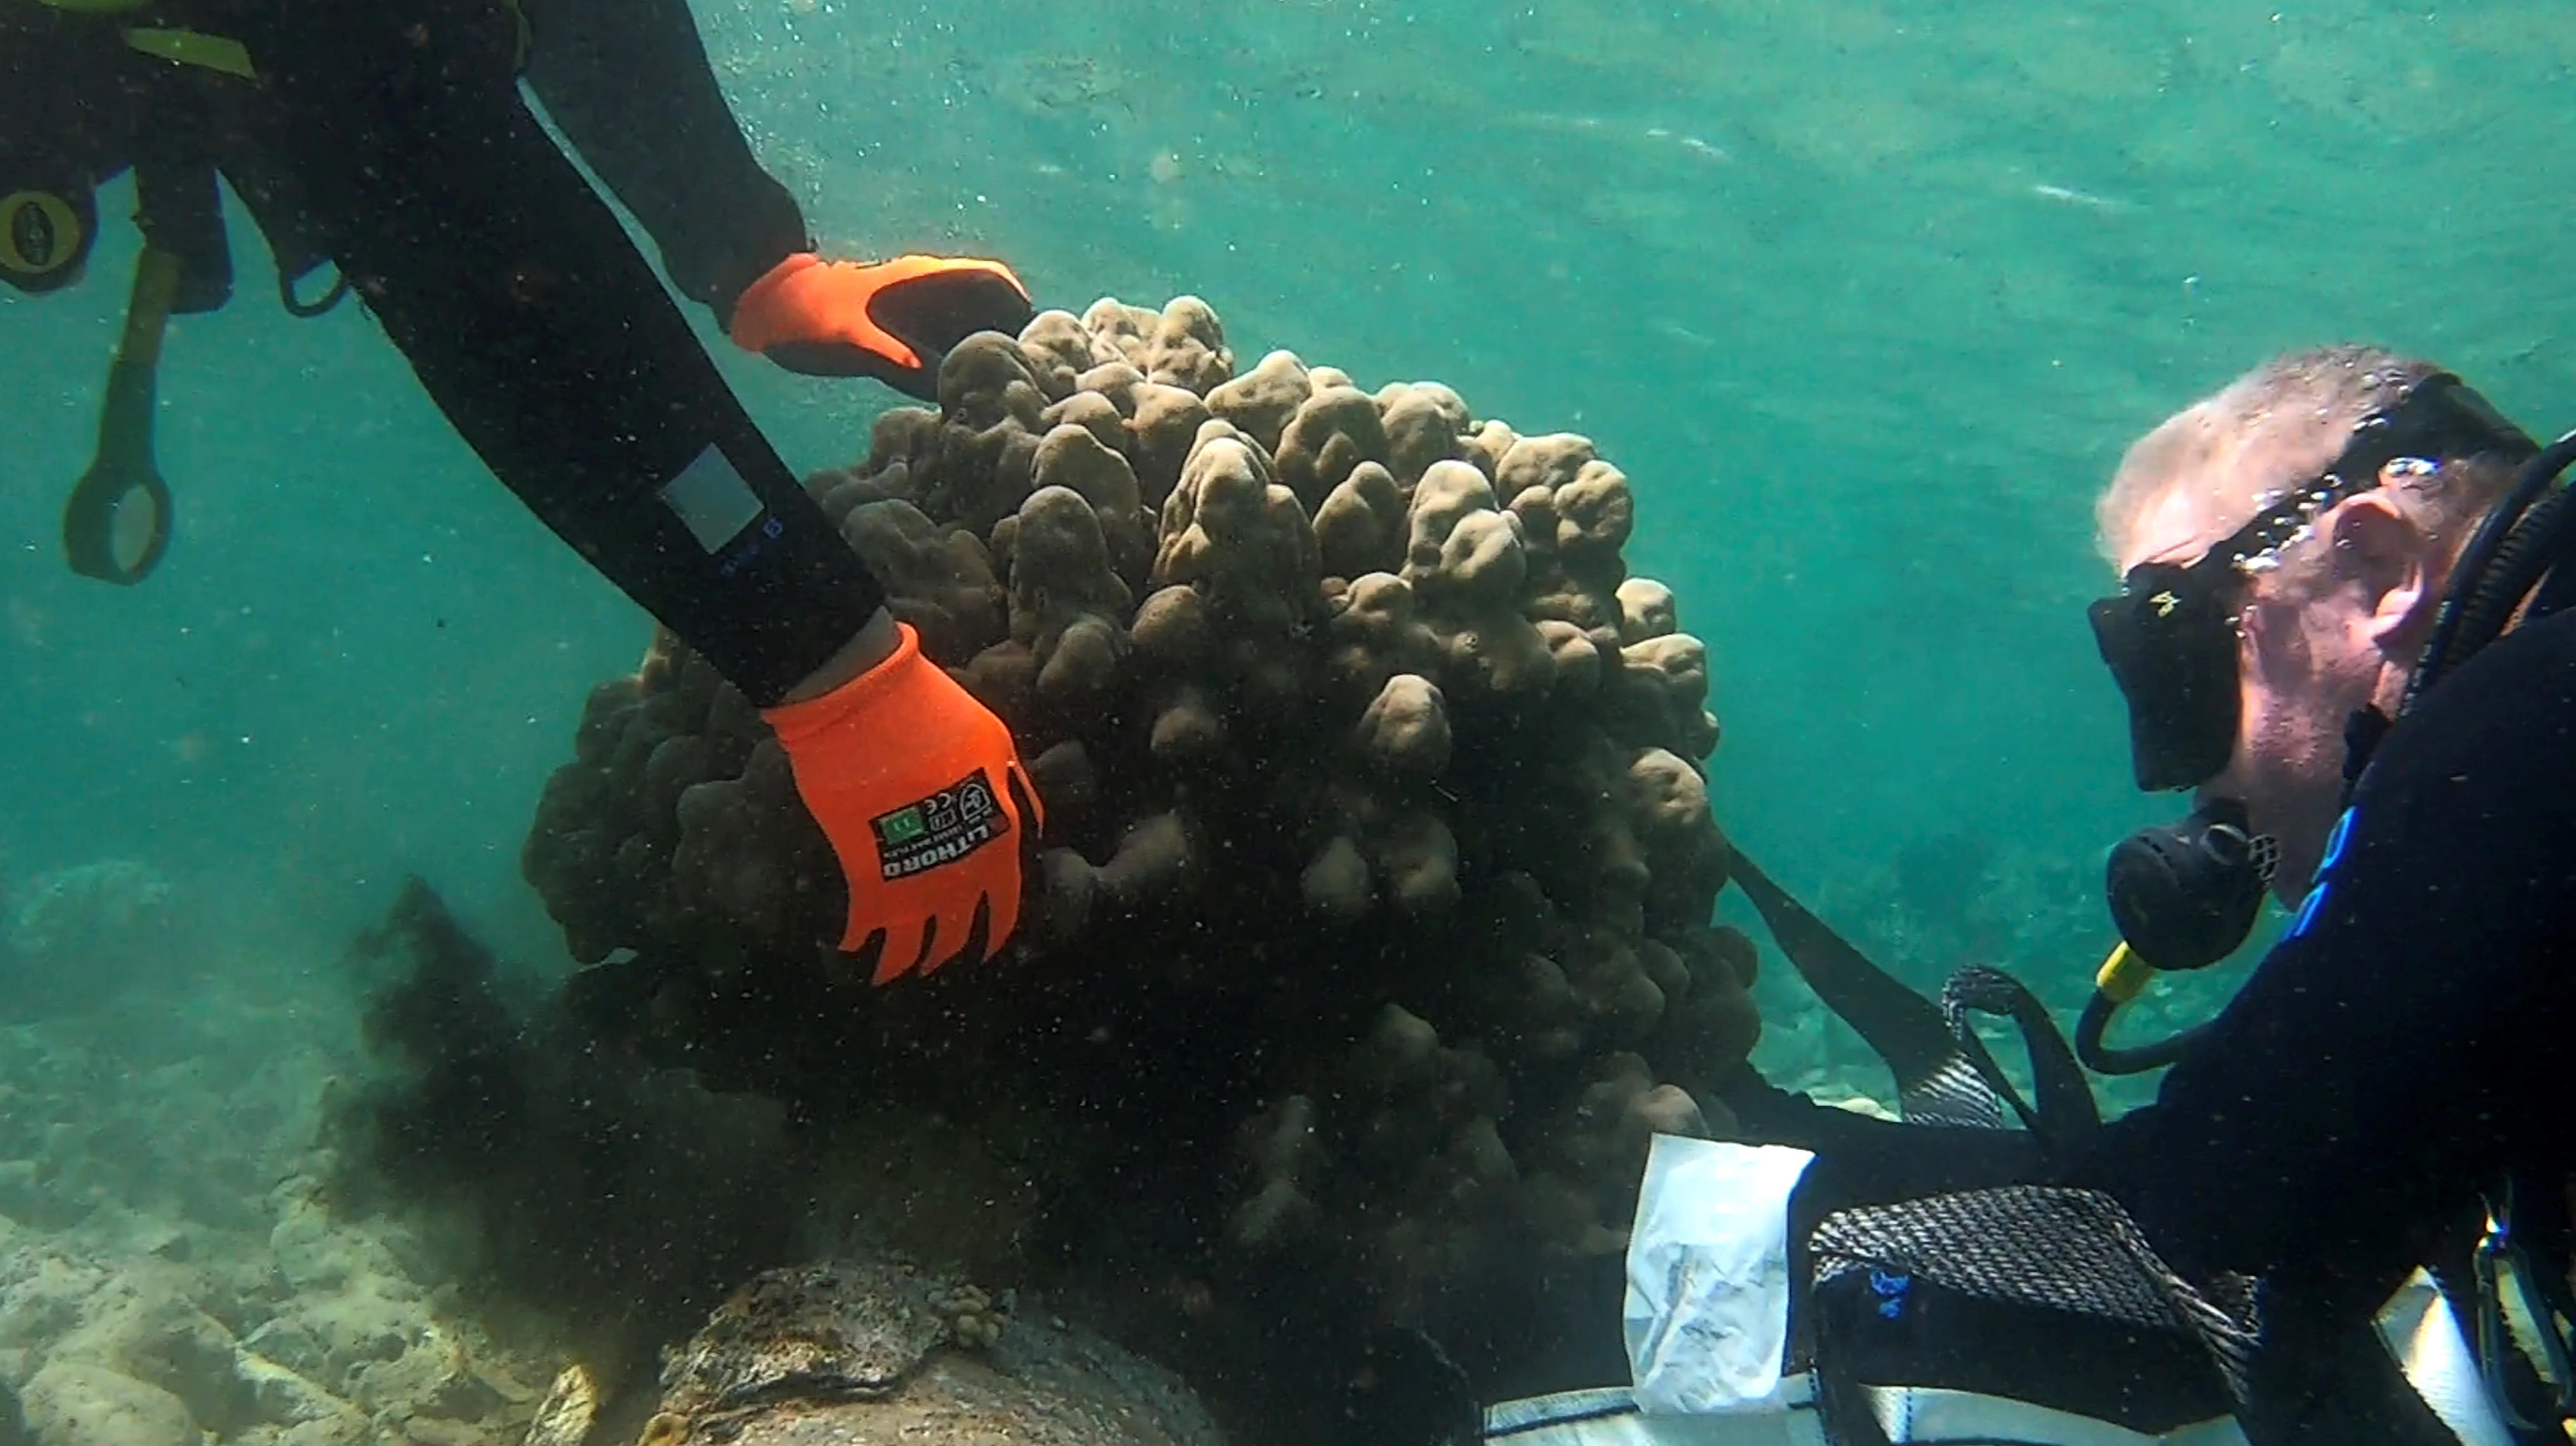 Scientists gently relocate the coral reef in Eilat